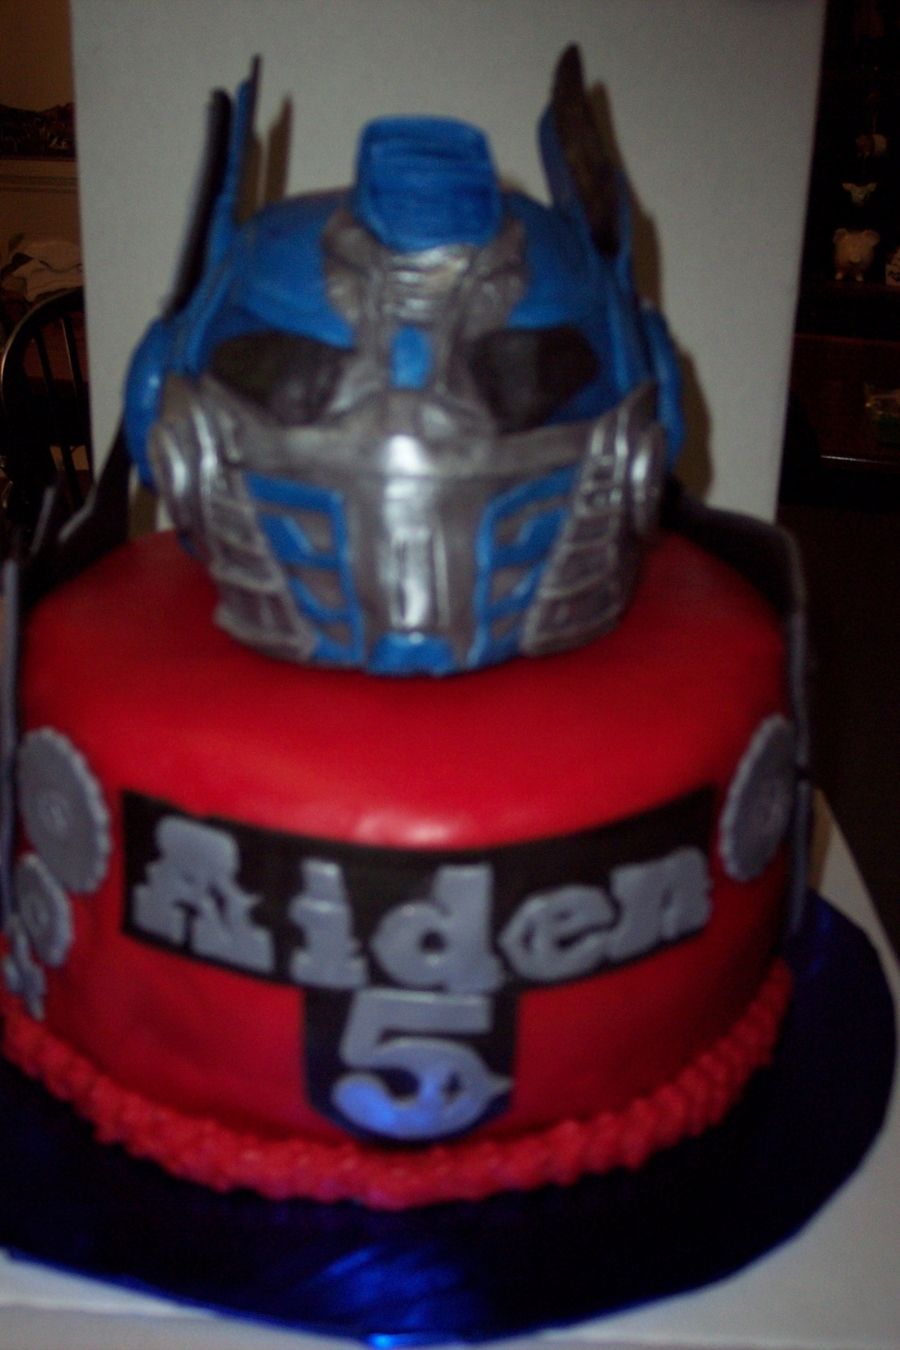 Superb Optimus Prime Transformers Birthday Cake Cakecentral Com Funny Birthday Cards Online Alyptdamsfinfo